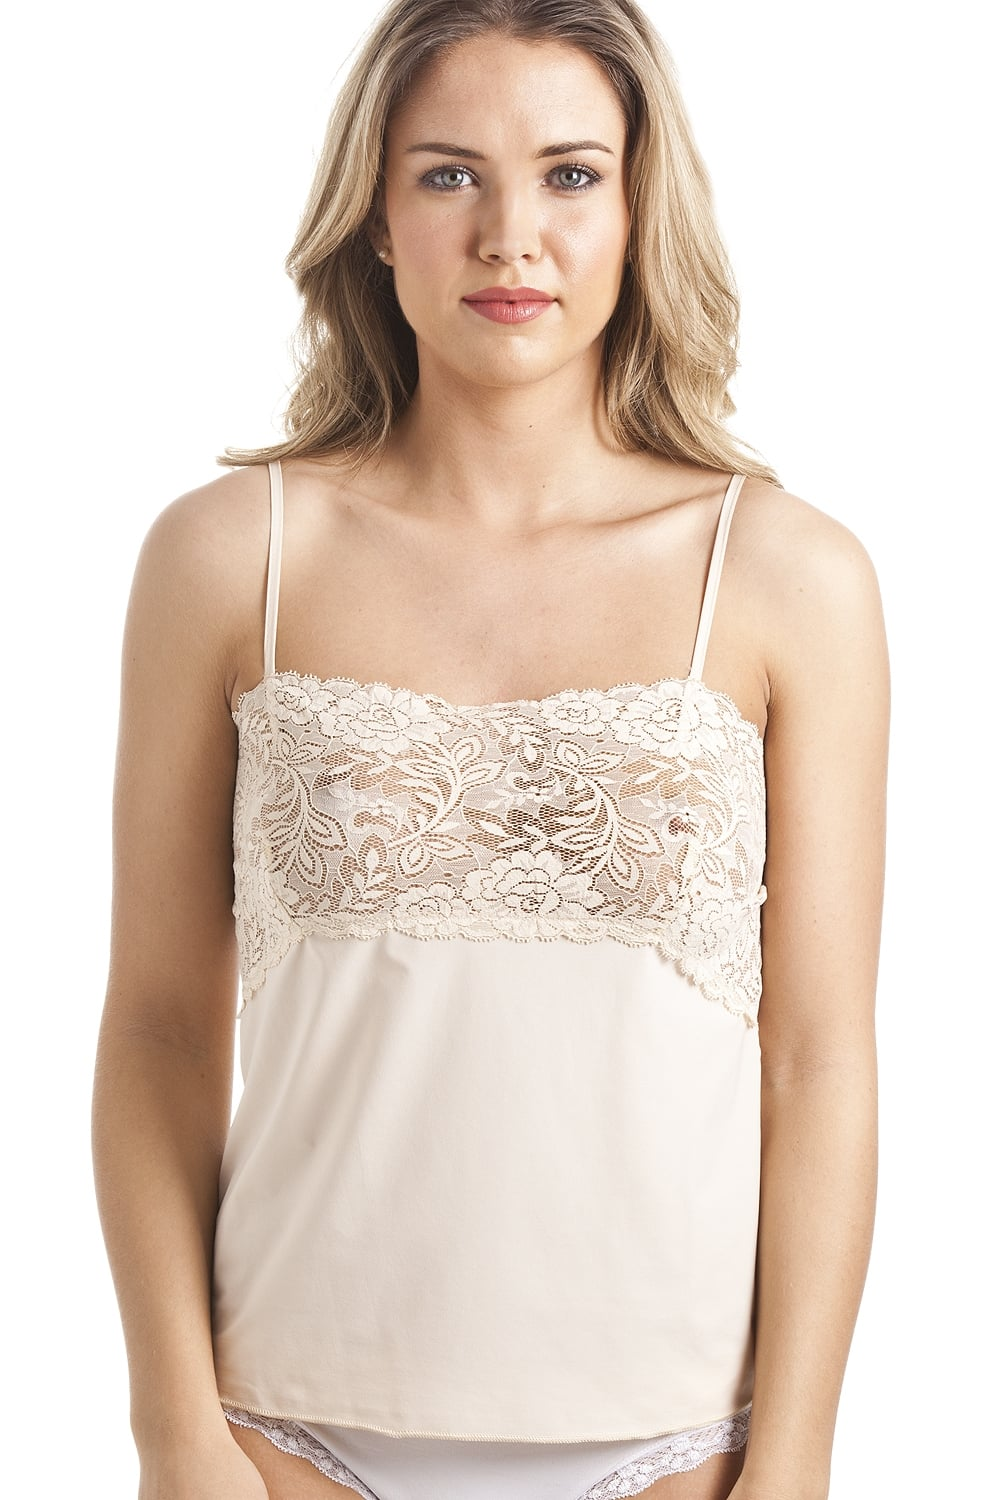 ab0692bc3bf Beige Floral Lace Trim Camisole Top